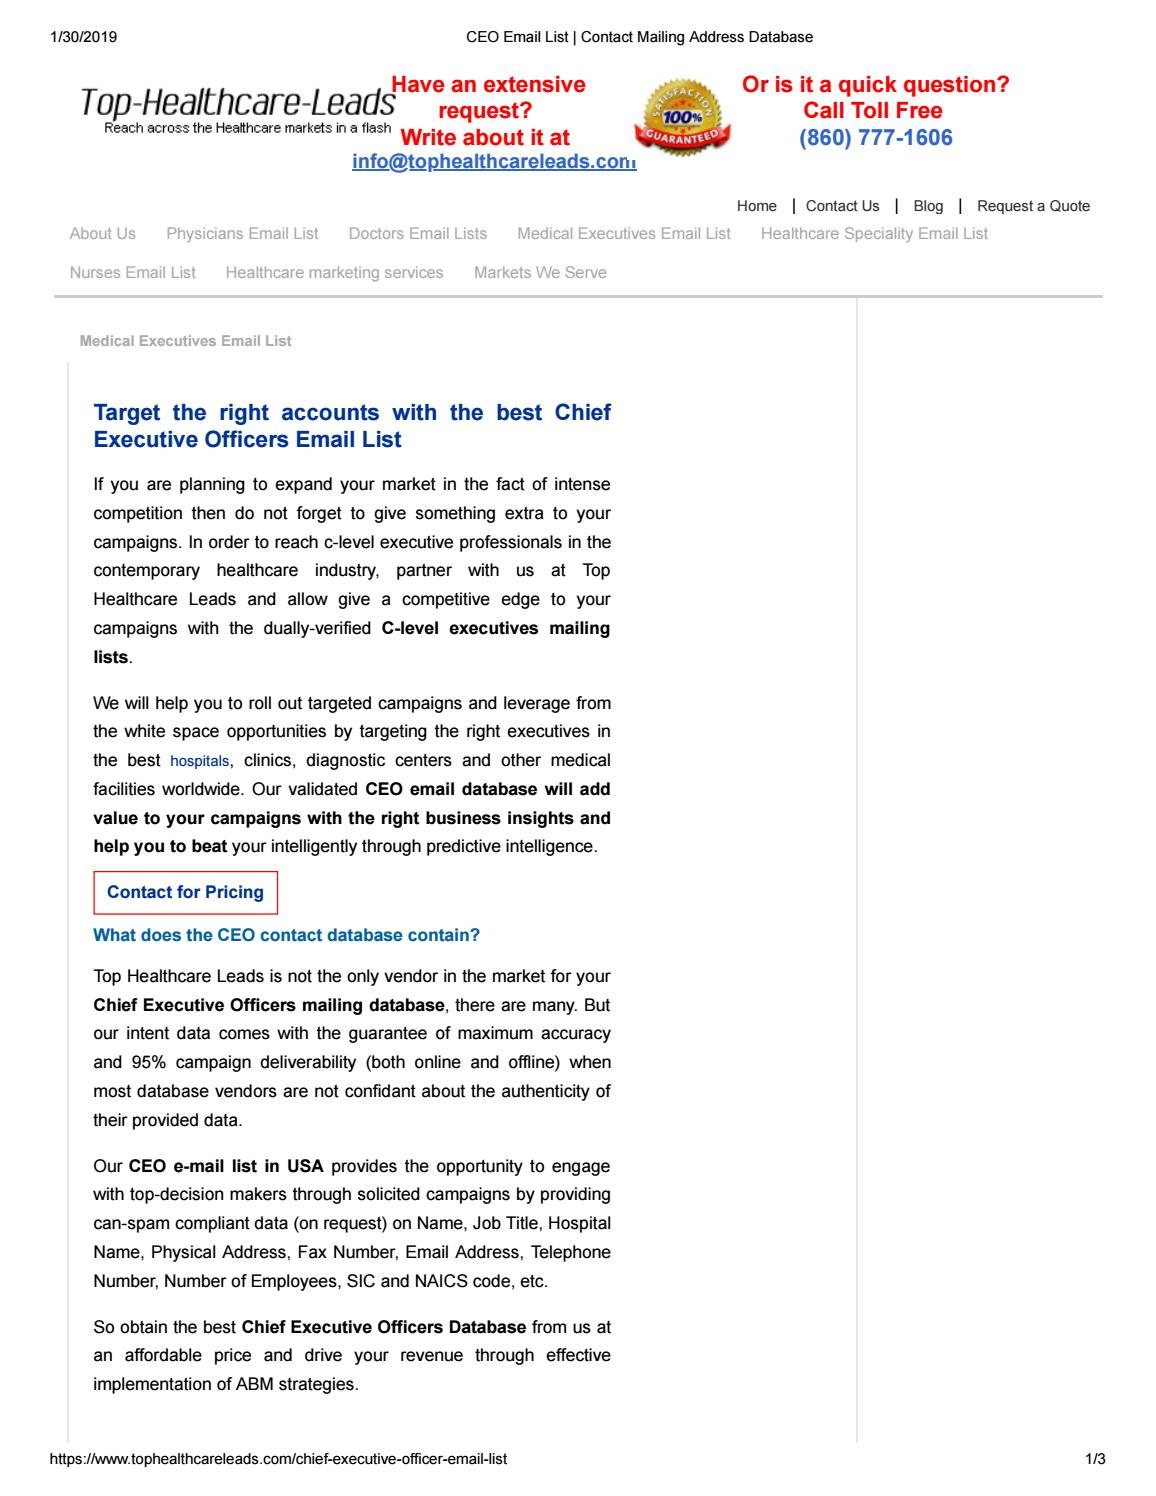 Chief Executive Officers Mailing List by ameliajames112 - issuu